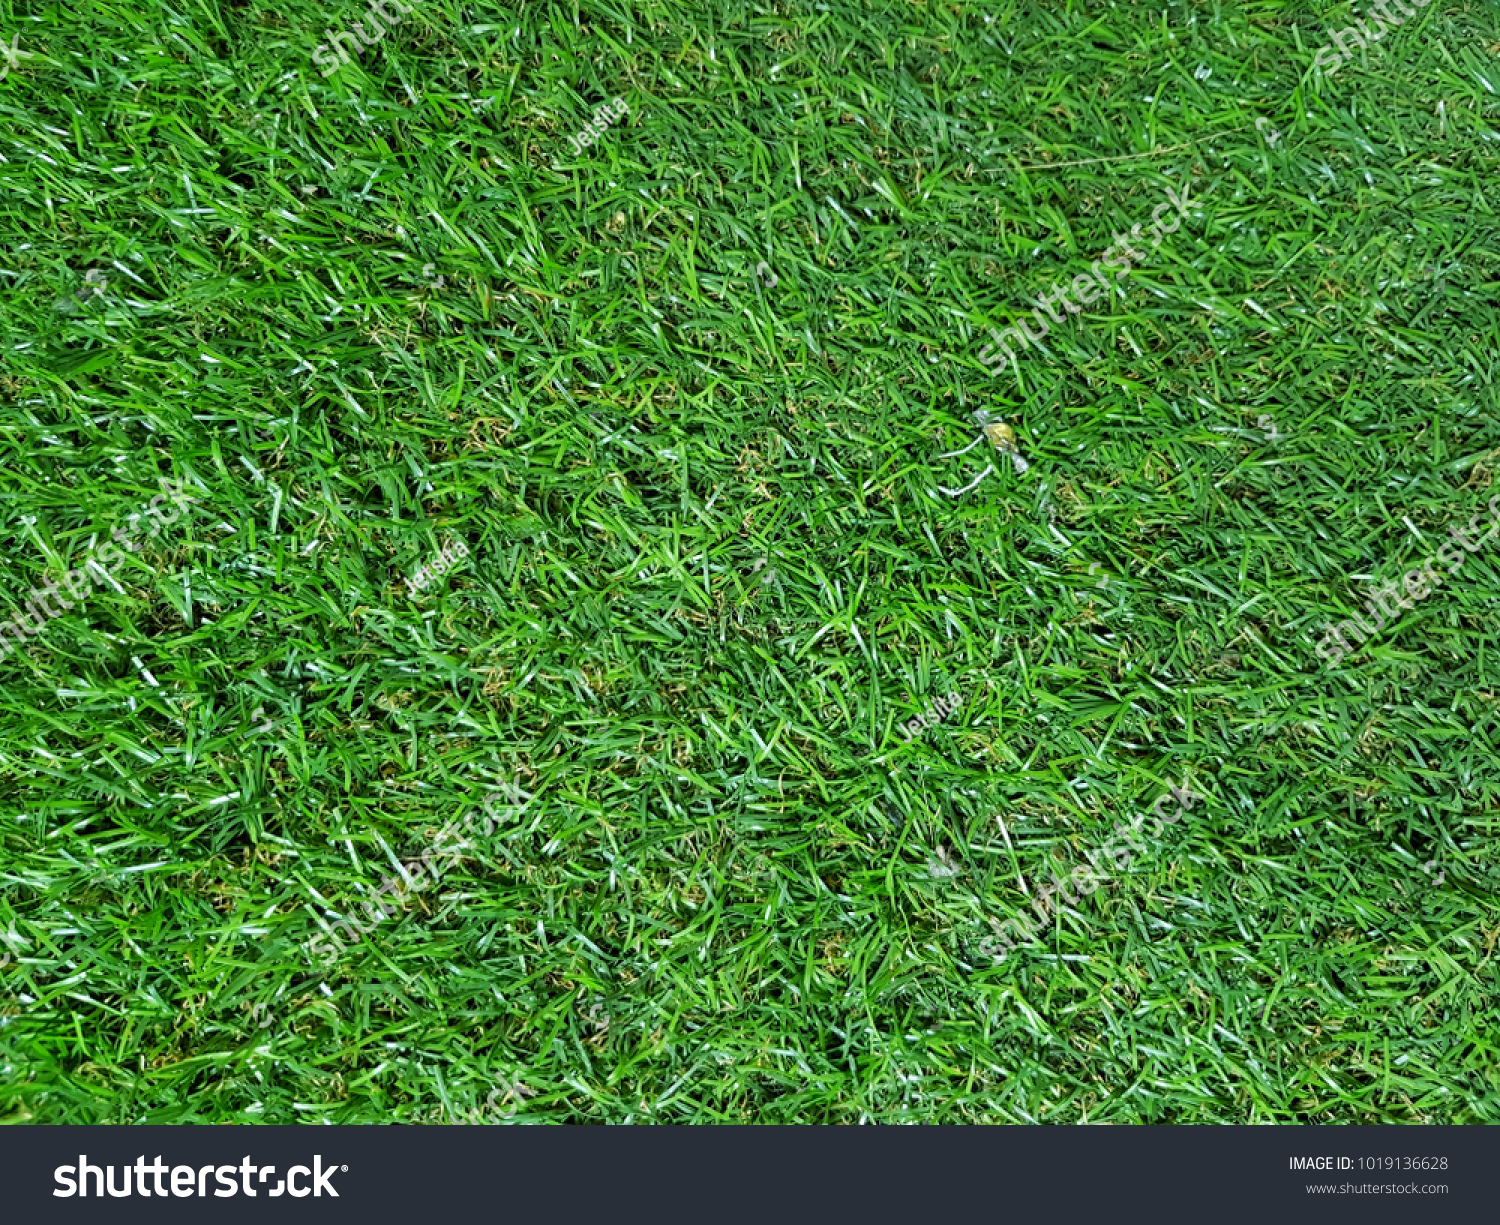 artificial grass texture. Close Up Of Artificial Grass Background Texture Made From Plastic